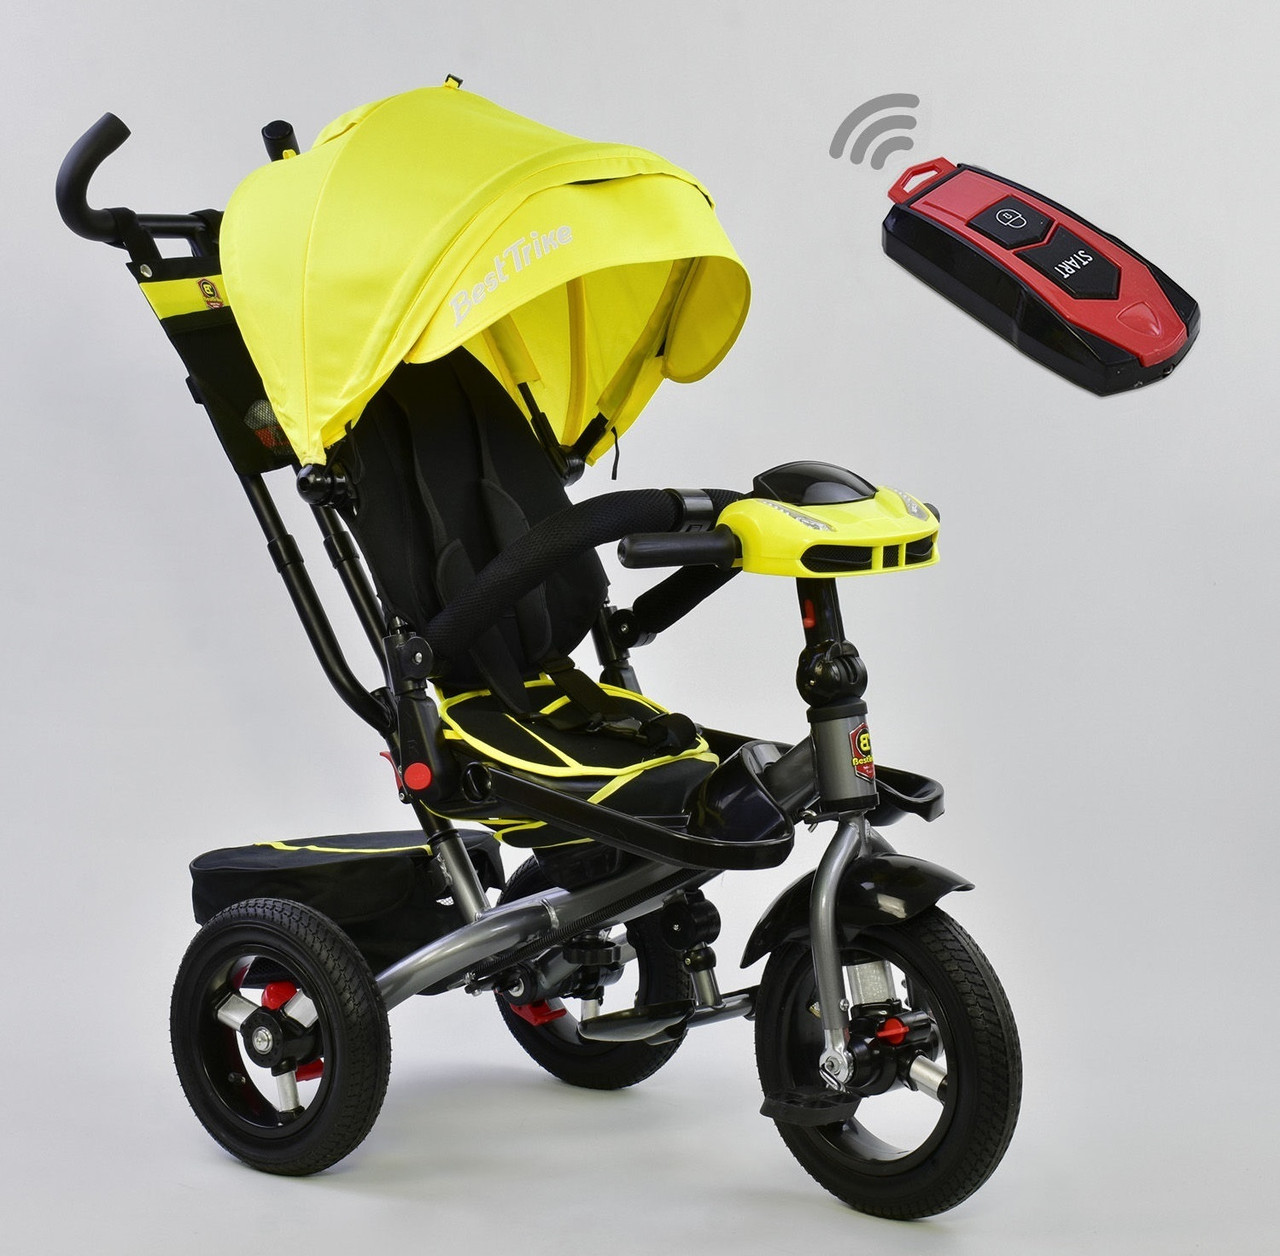 Best Trike Велосипед Best Trike 6088 F 1340 New Yellow/Black (6088 FN)